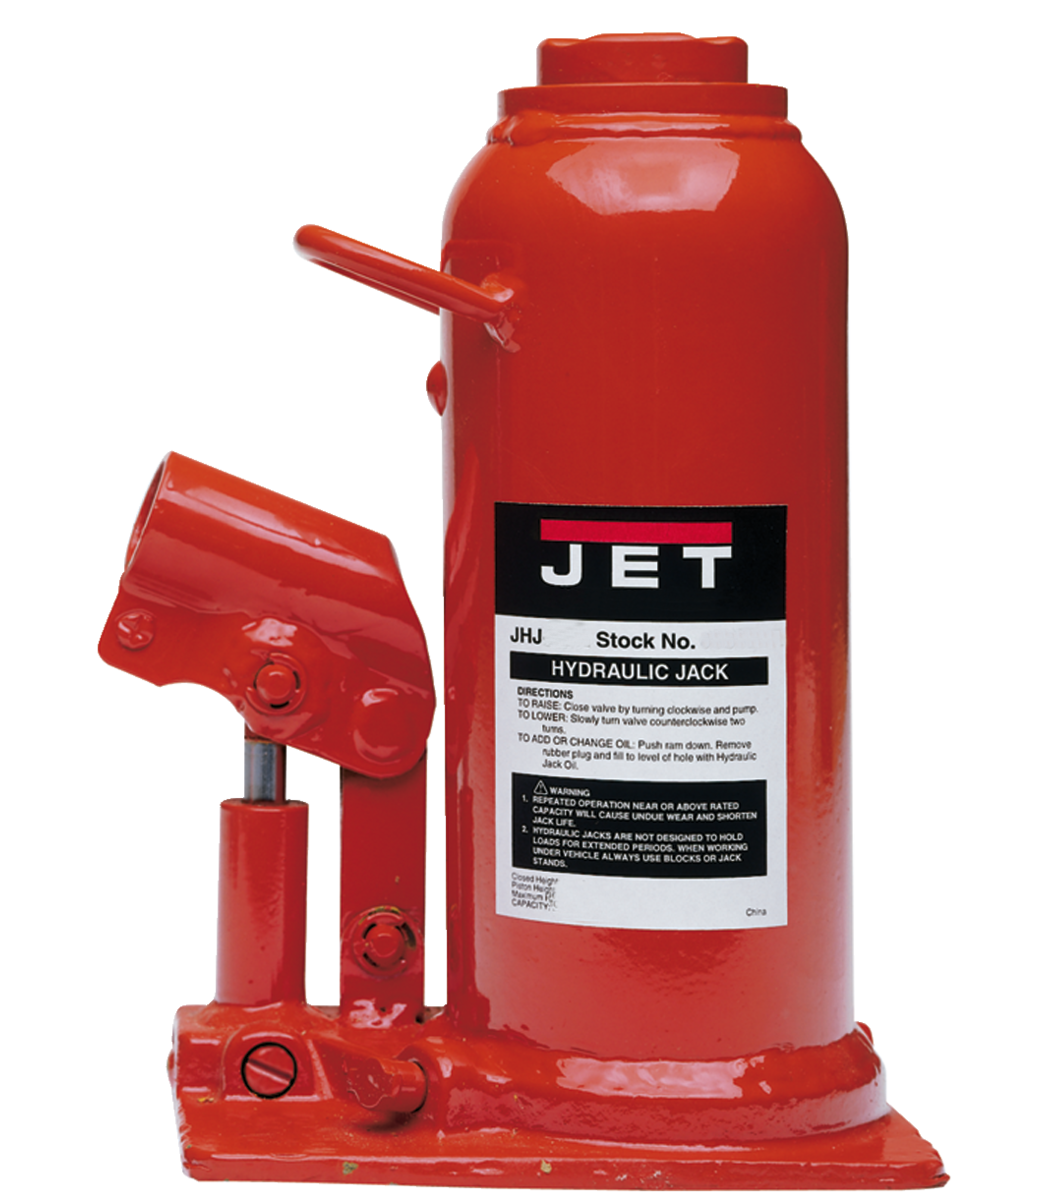 JHJ-2, 2-Ton Hydraulic Bottle Jack